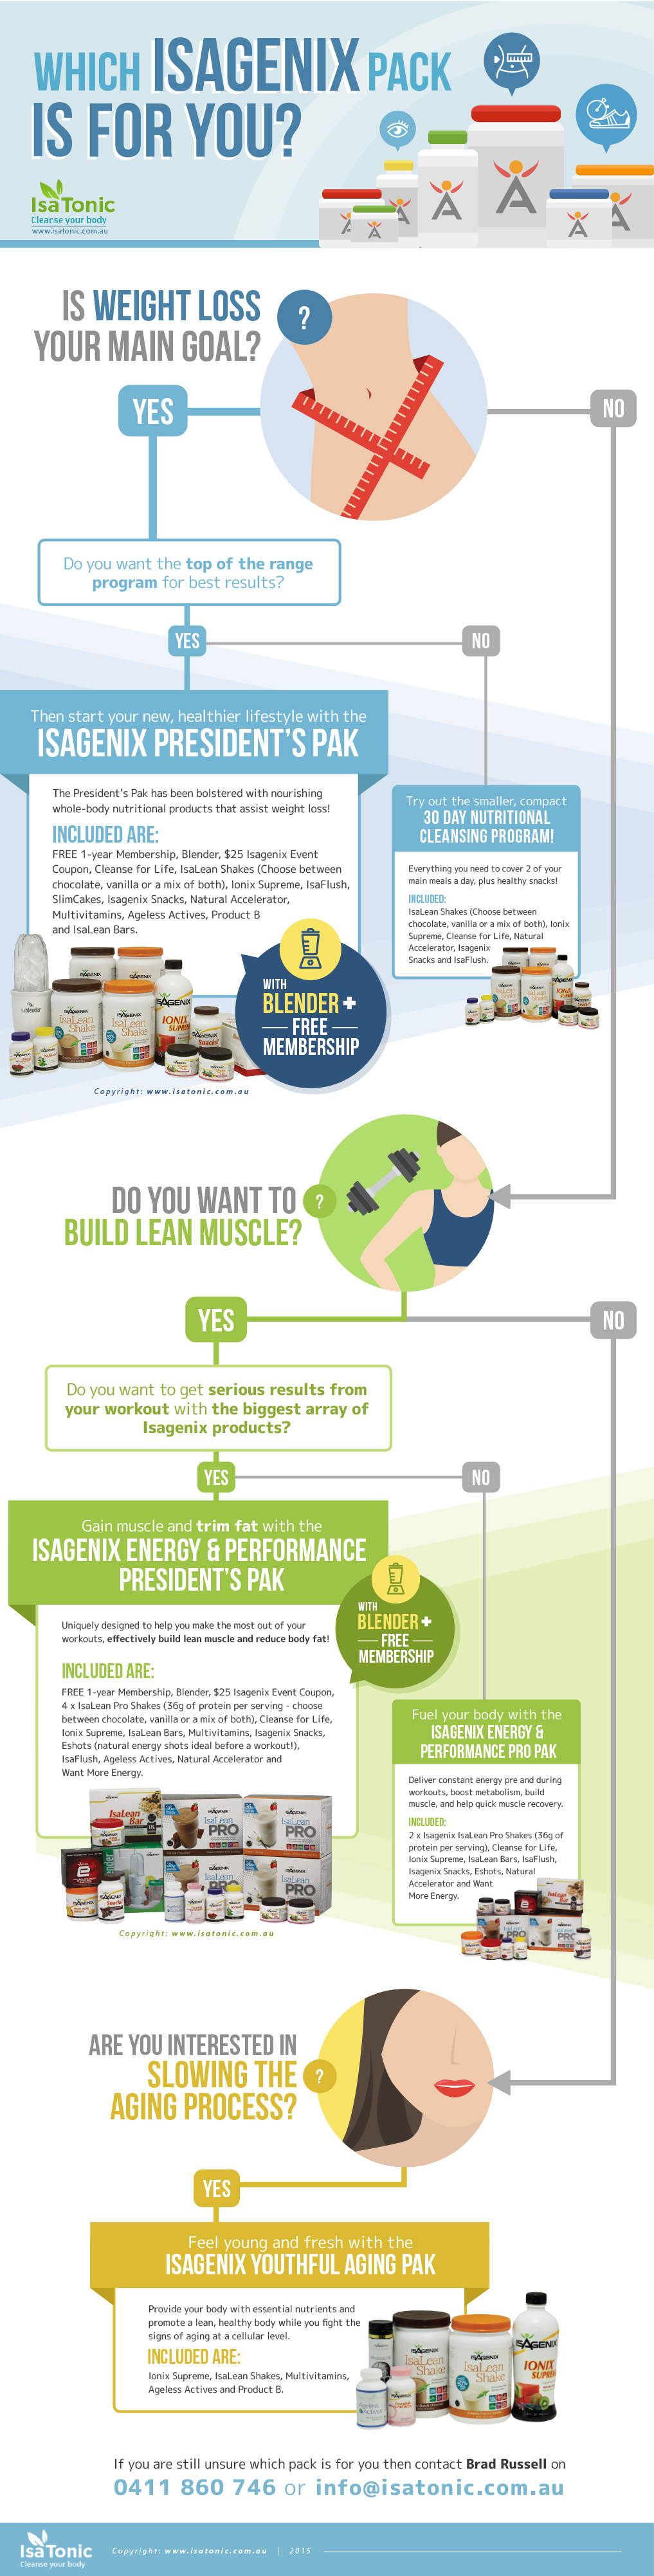 Which Isagenix Pack is for You Infographic